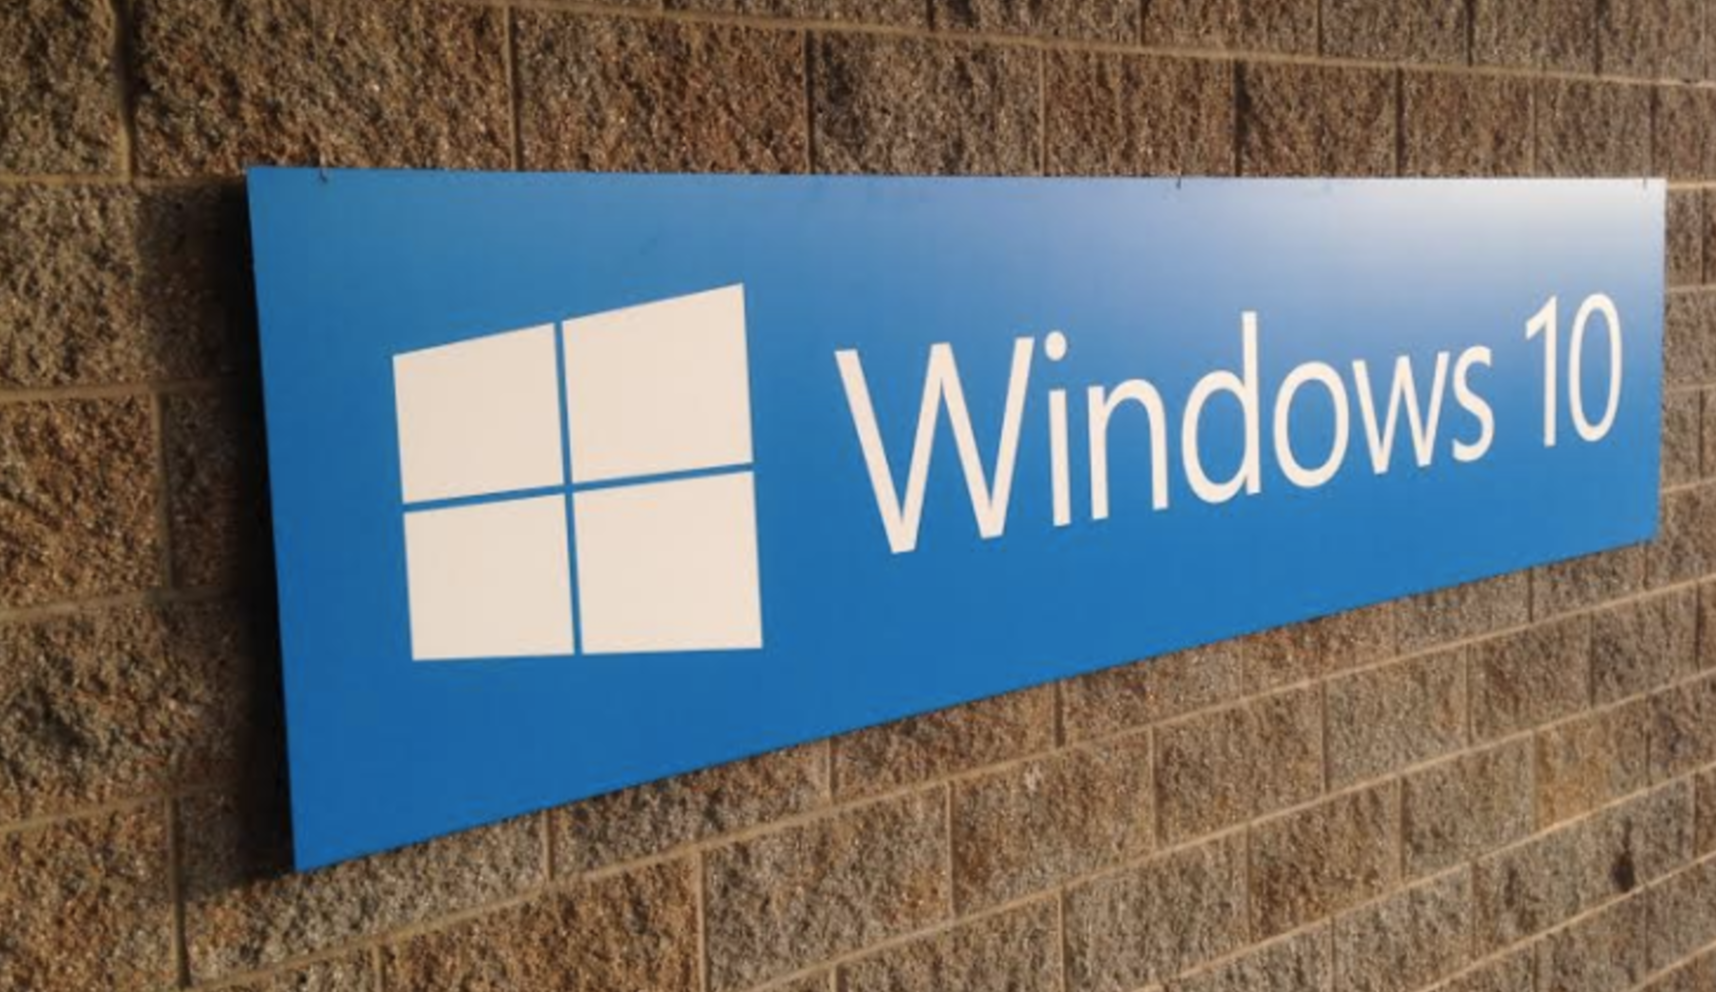 Microsoft Rolling Out Emergency Windows 10 Patches to Fix Chip Bugs